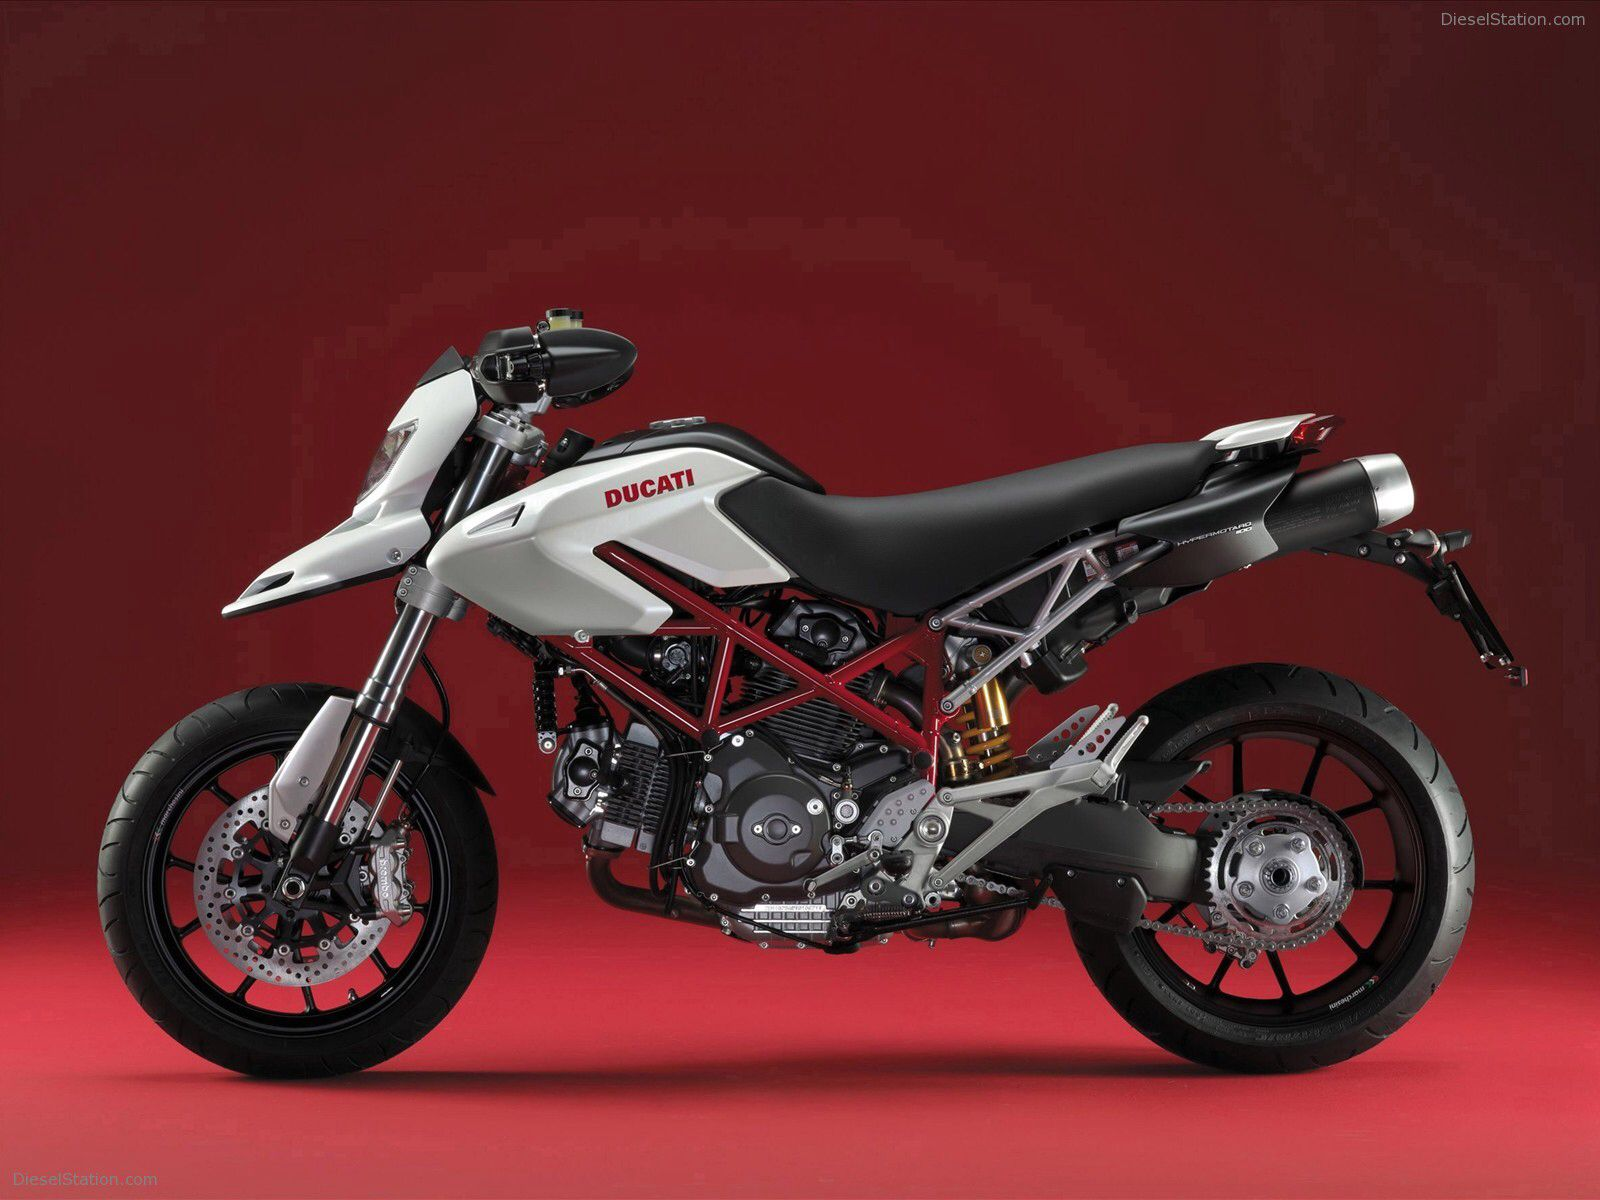 Image from http://www.dieselstation.com/wallpapers/albums/Ducati/New-pearl-white-livery/Ducati-New-pearl-white-livery-for-Ducati-Hypermotard-and-Multistrada-01.jpg.